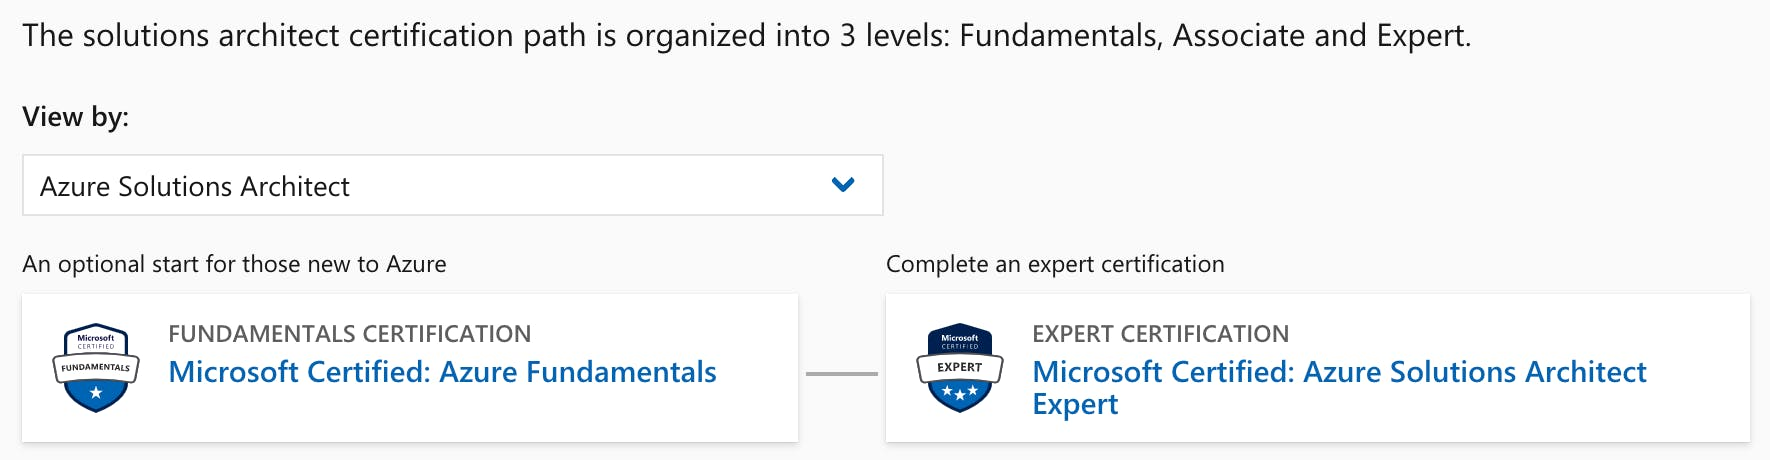 Solutions Architect certification path